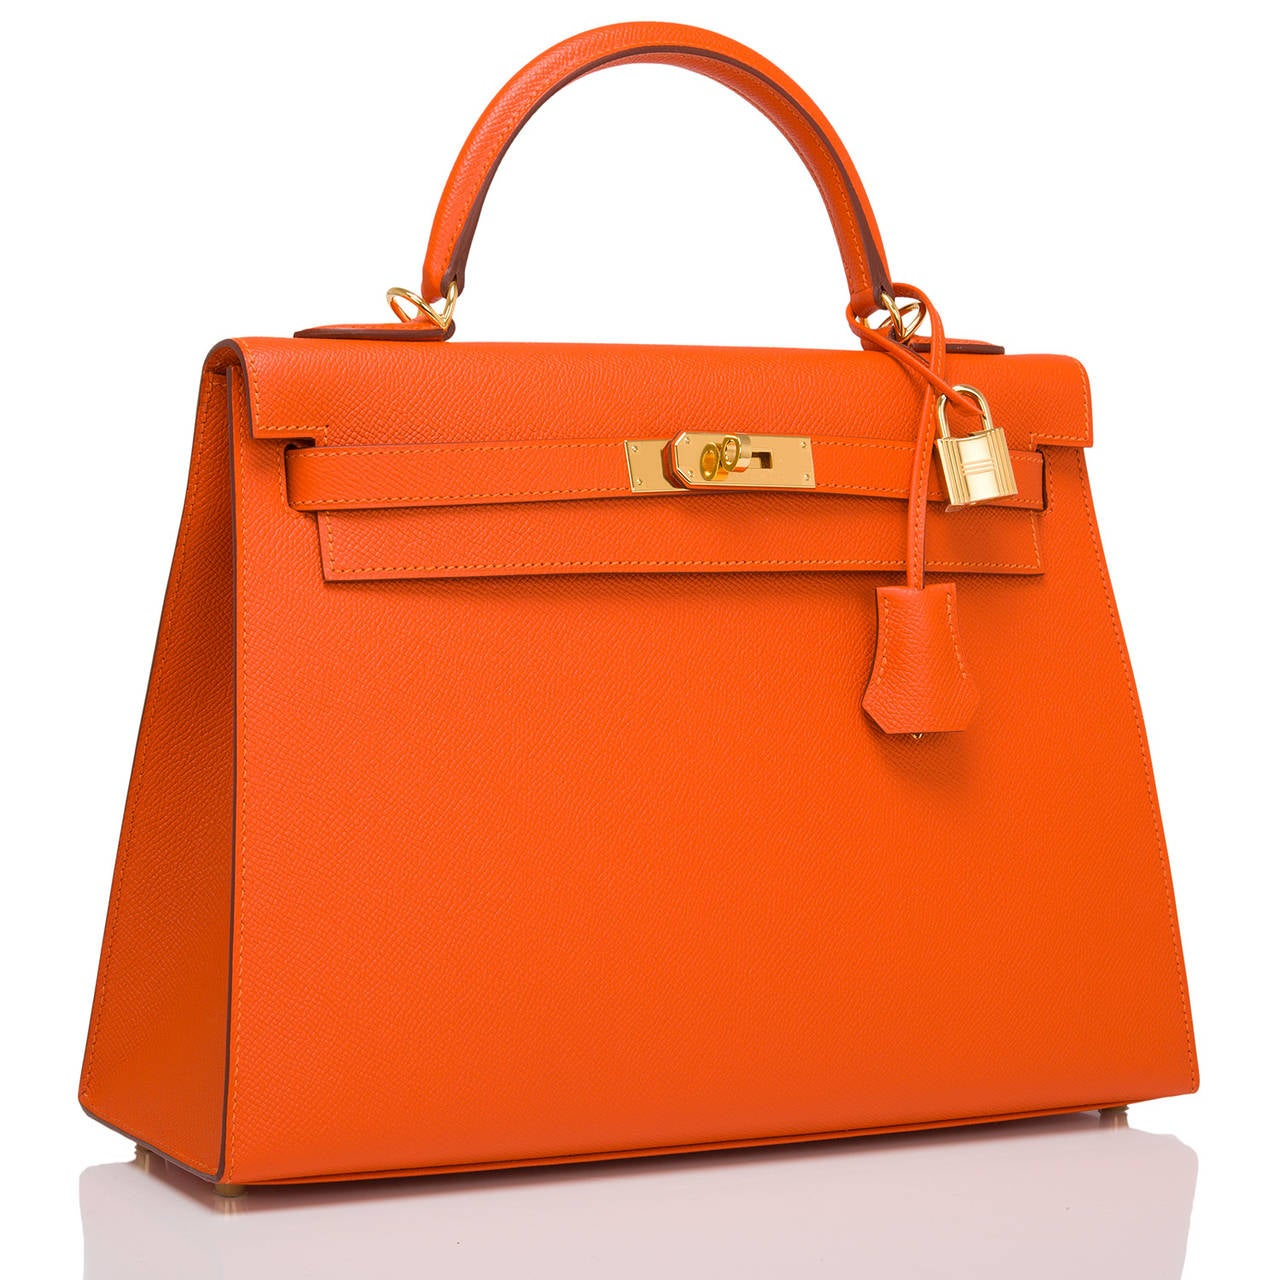 Hermes Orange H Kelly Sellier 32cm in epsom leather with gold hardware.  This Kelly features tonal stitching, front toggle closure, a clochette with lock and two keys and a single rolled handle. The interior is lined in Orange H chevre and